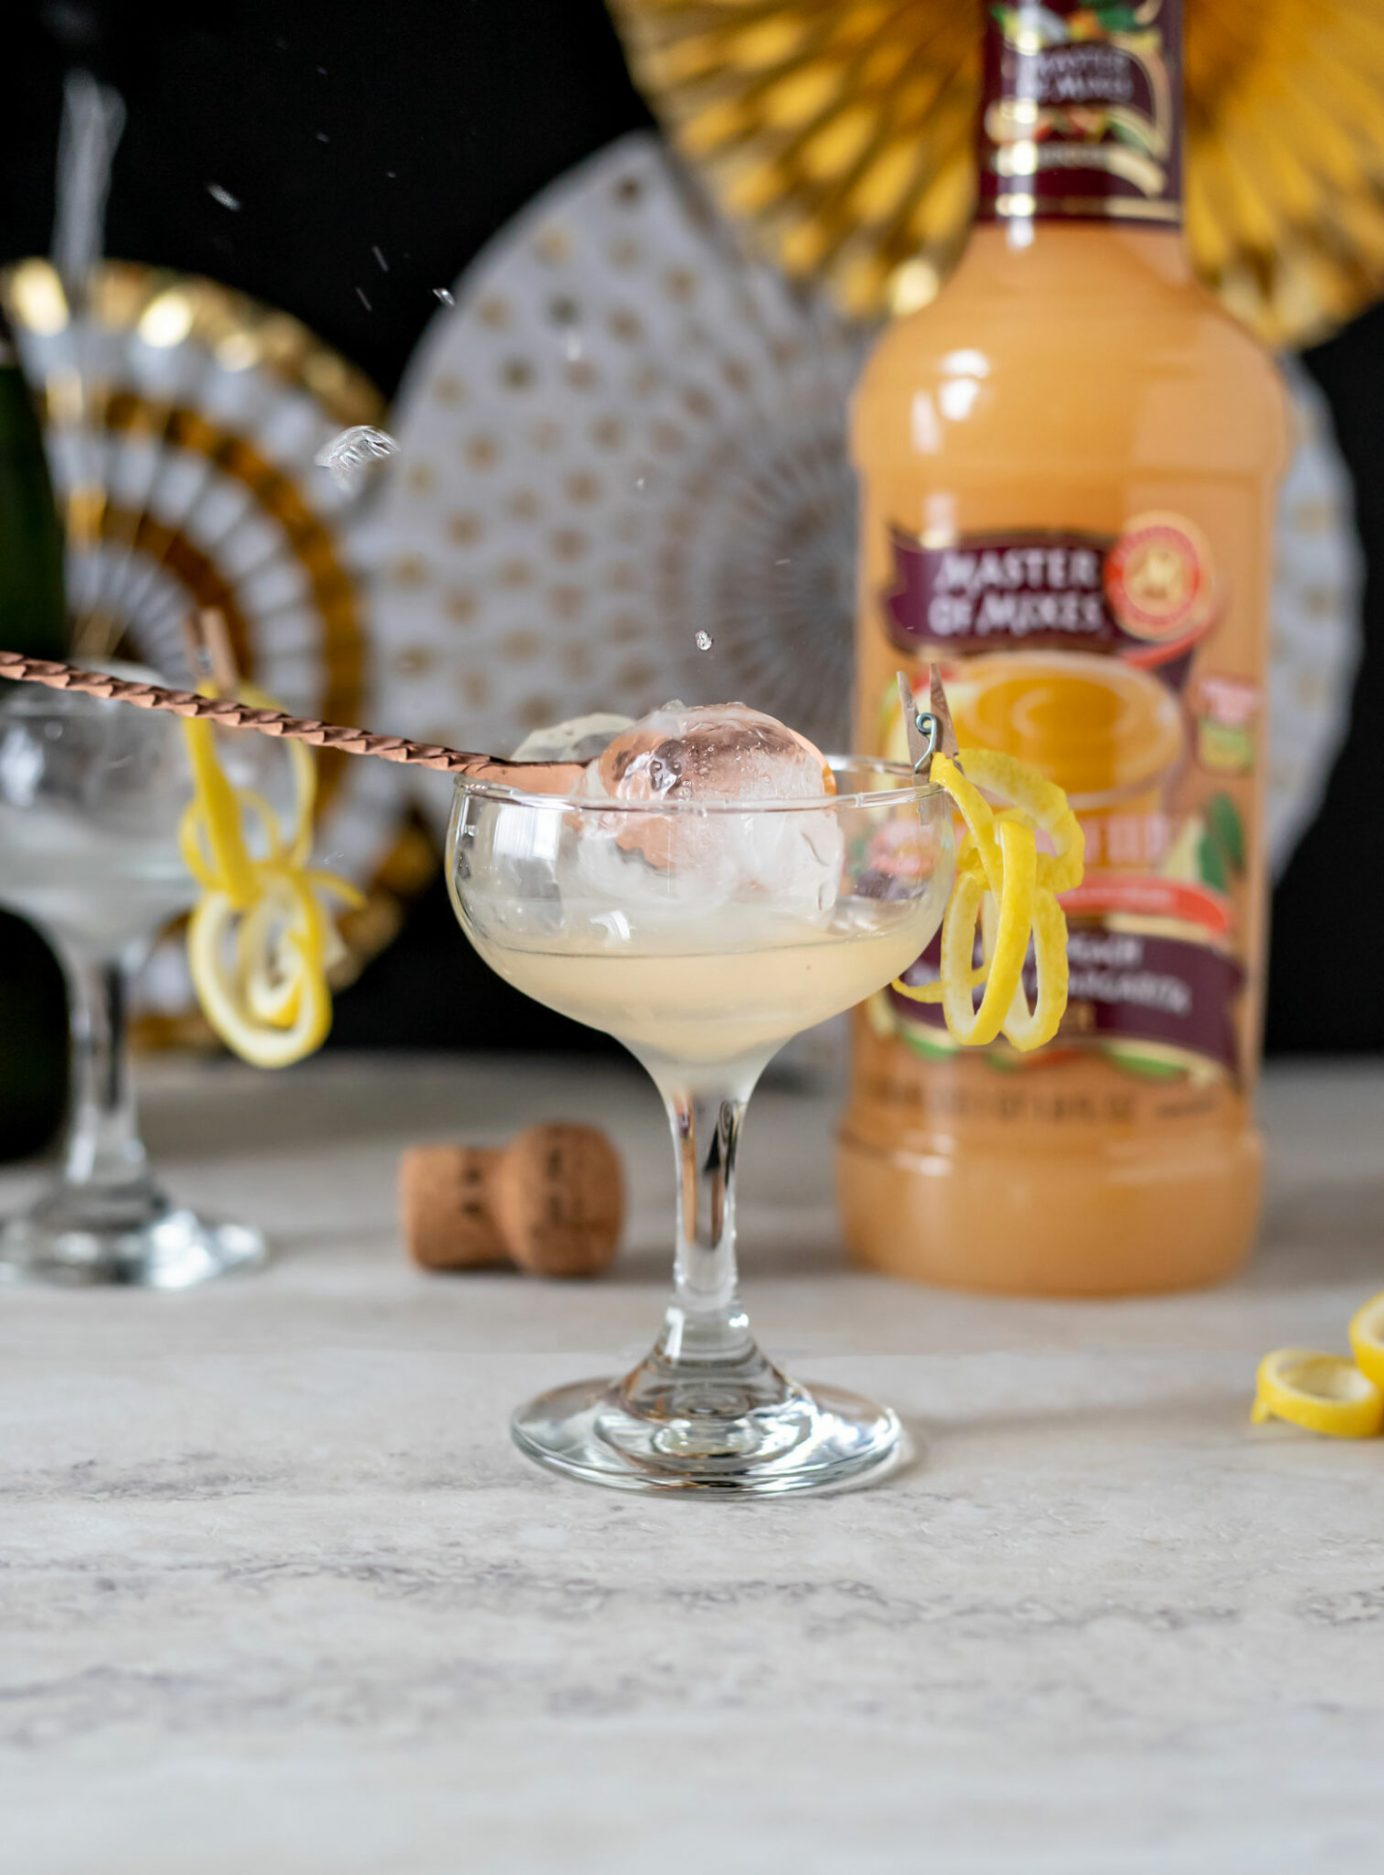 The Ball Drop is a New Years Eve ice ball cocktail made with strawberry vodka, Master of Mixes White Peach Margarita/DaiquiriMix, lemon juice, and edible glitter. Ice ball cocktail with Master of Mixes. #Sponsored #MasterofMixes #CocktailRecipe #Cocktail #NewYearsEve #ElleTalk